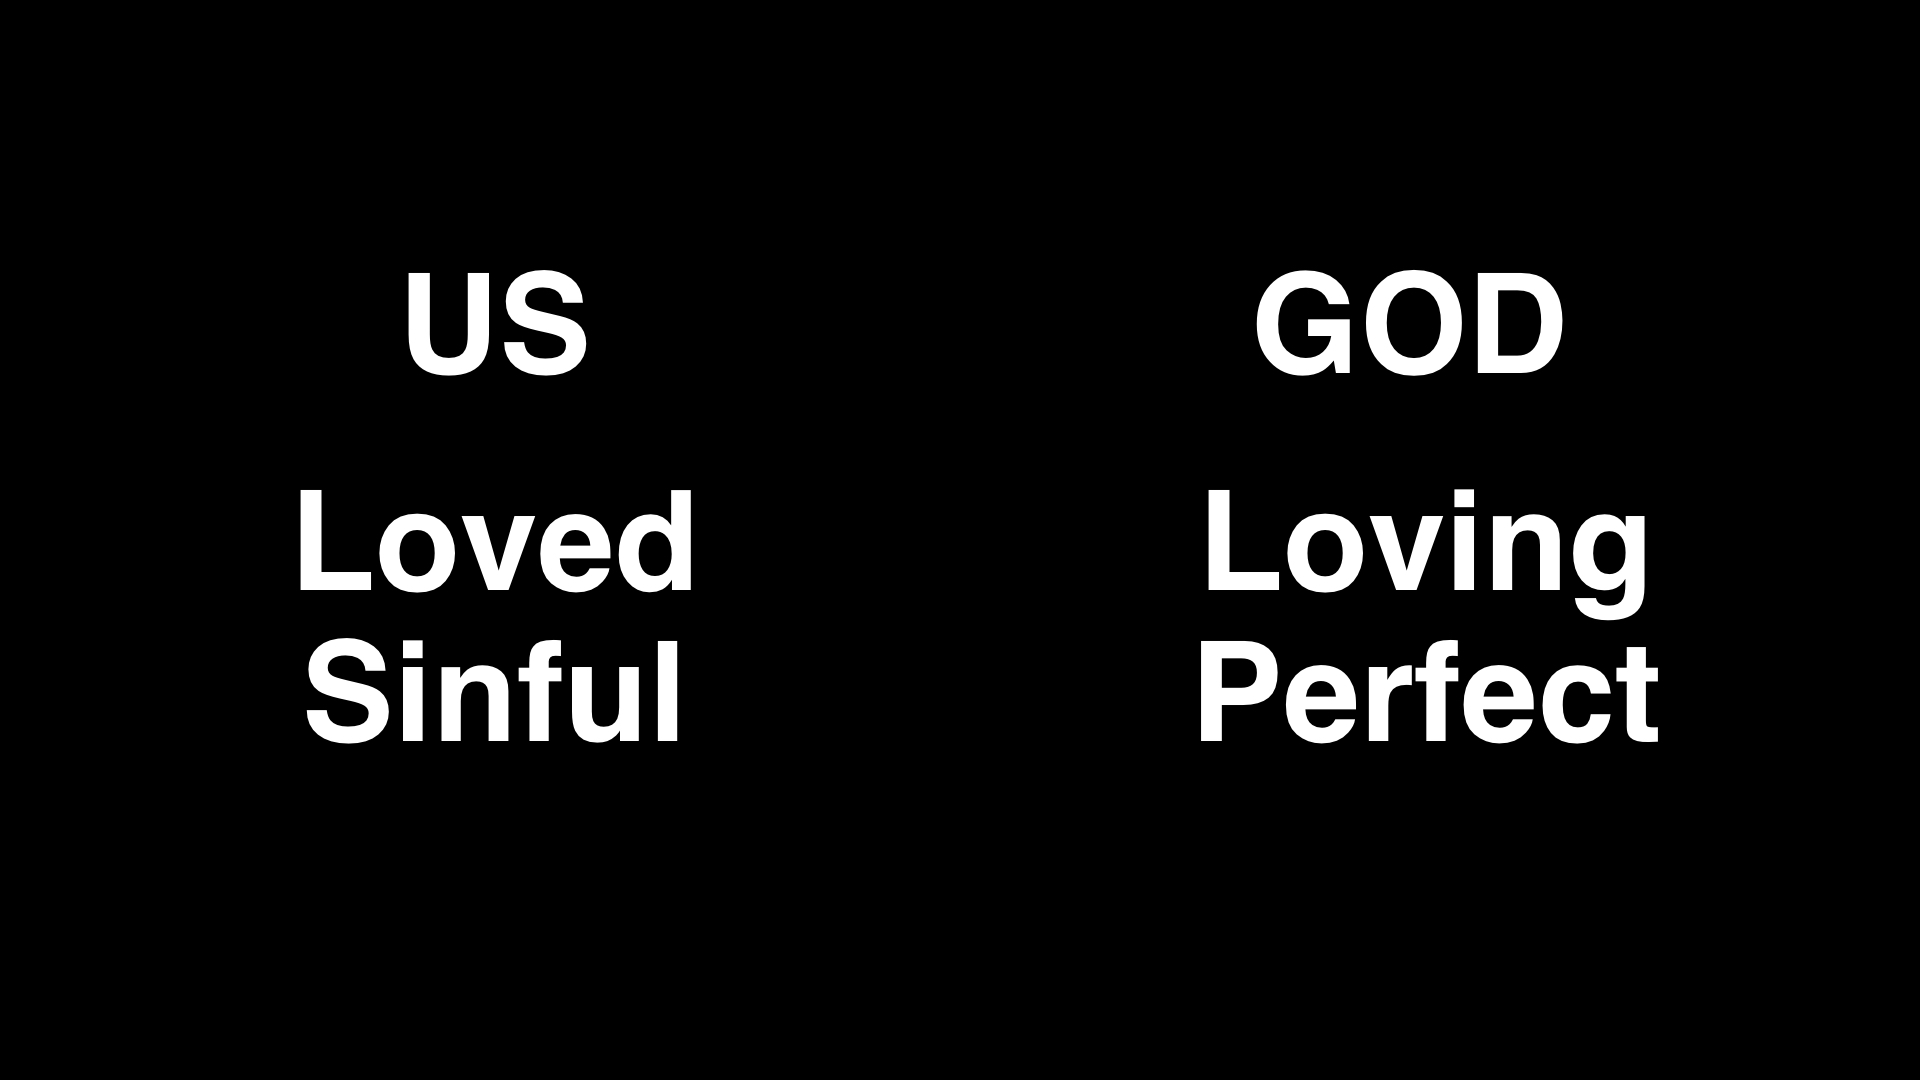 Unfortunately, this relationship of love with God has been ruined. Instead of allowing God to be God and to direct our lives. We decided to do our own thing. We wanted to be our own gods and to decide what would be right and wrong for us. This is what the Bible calls sin. Sin is rejecting God and his leadership. Sin is breaking his law. So though we are loved, we are also sinful. And though God is loving, he is also perfect or holy. So God will not tolerate our sin.